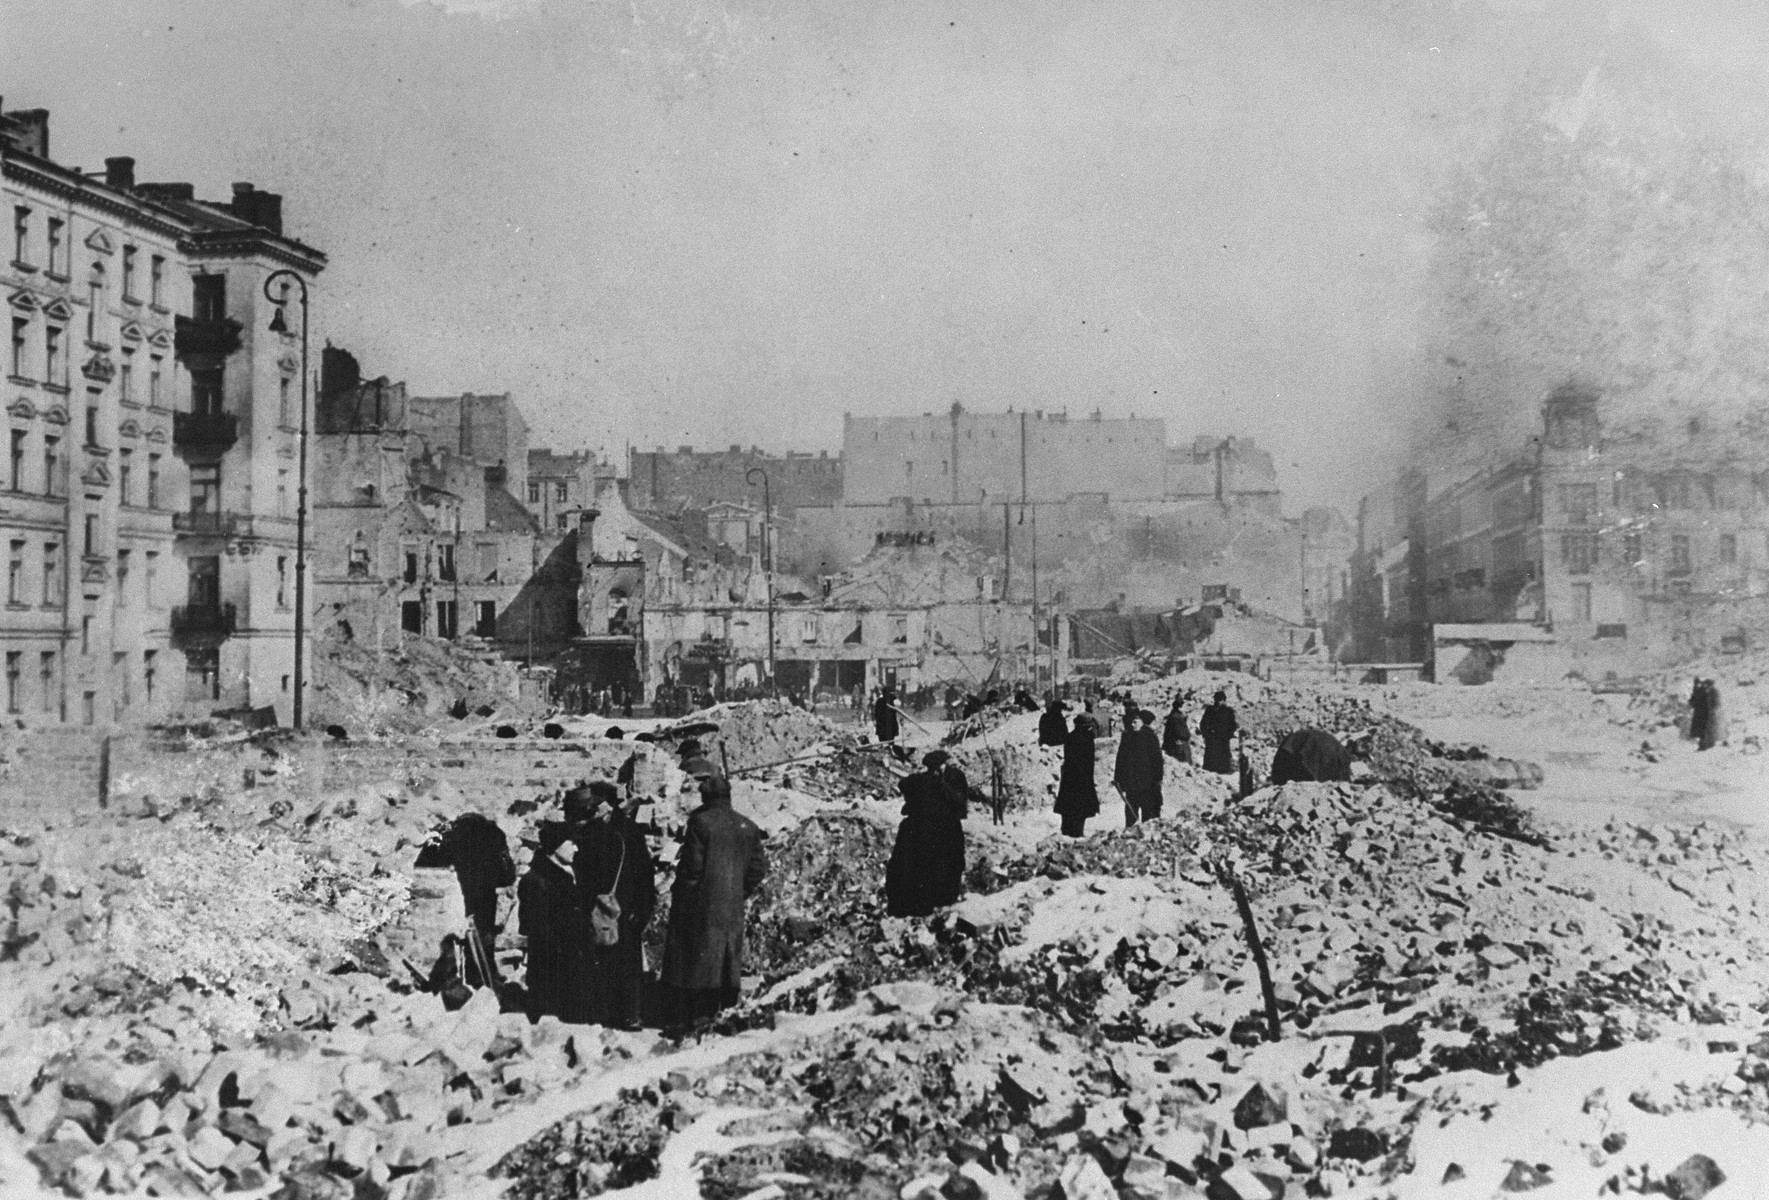 Local inhabitants wade through ruins in Warsaw following the surrender of the city.